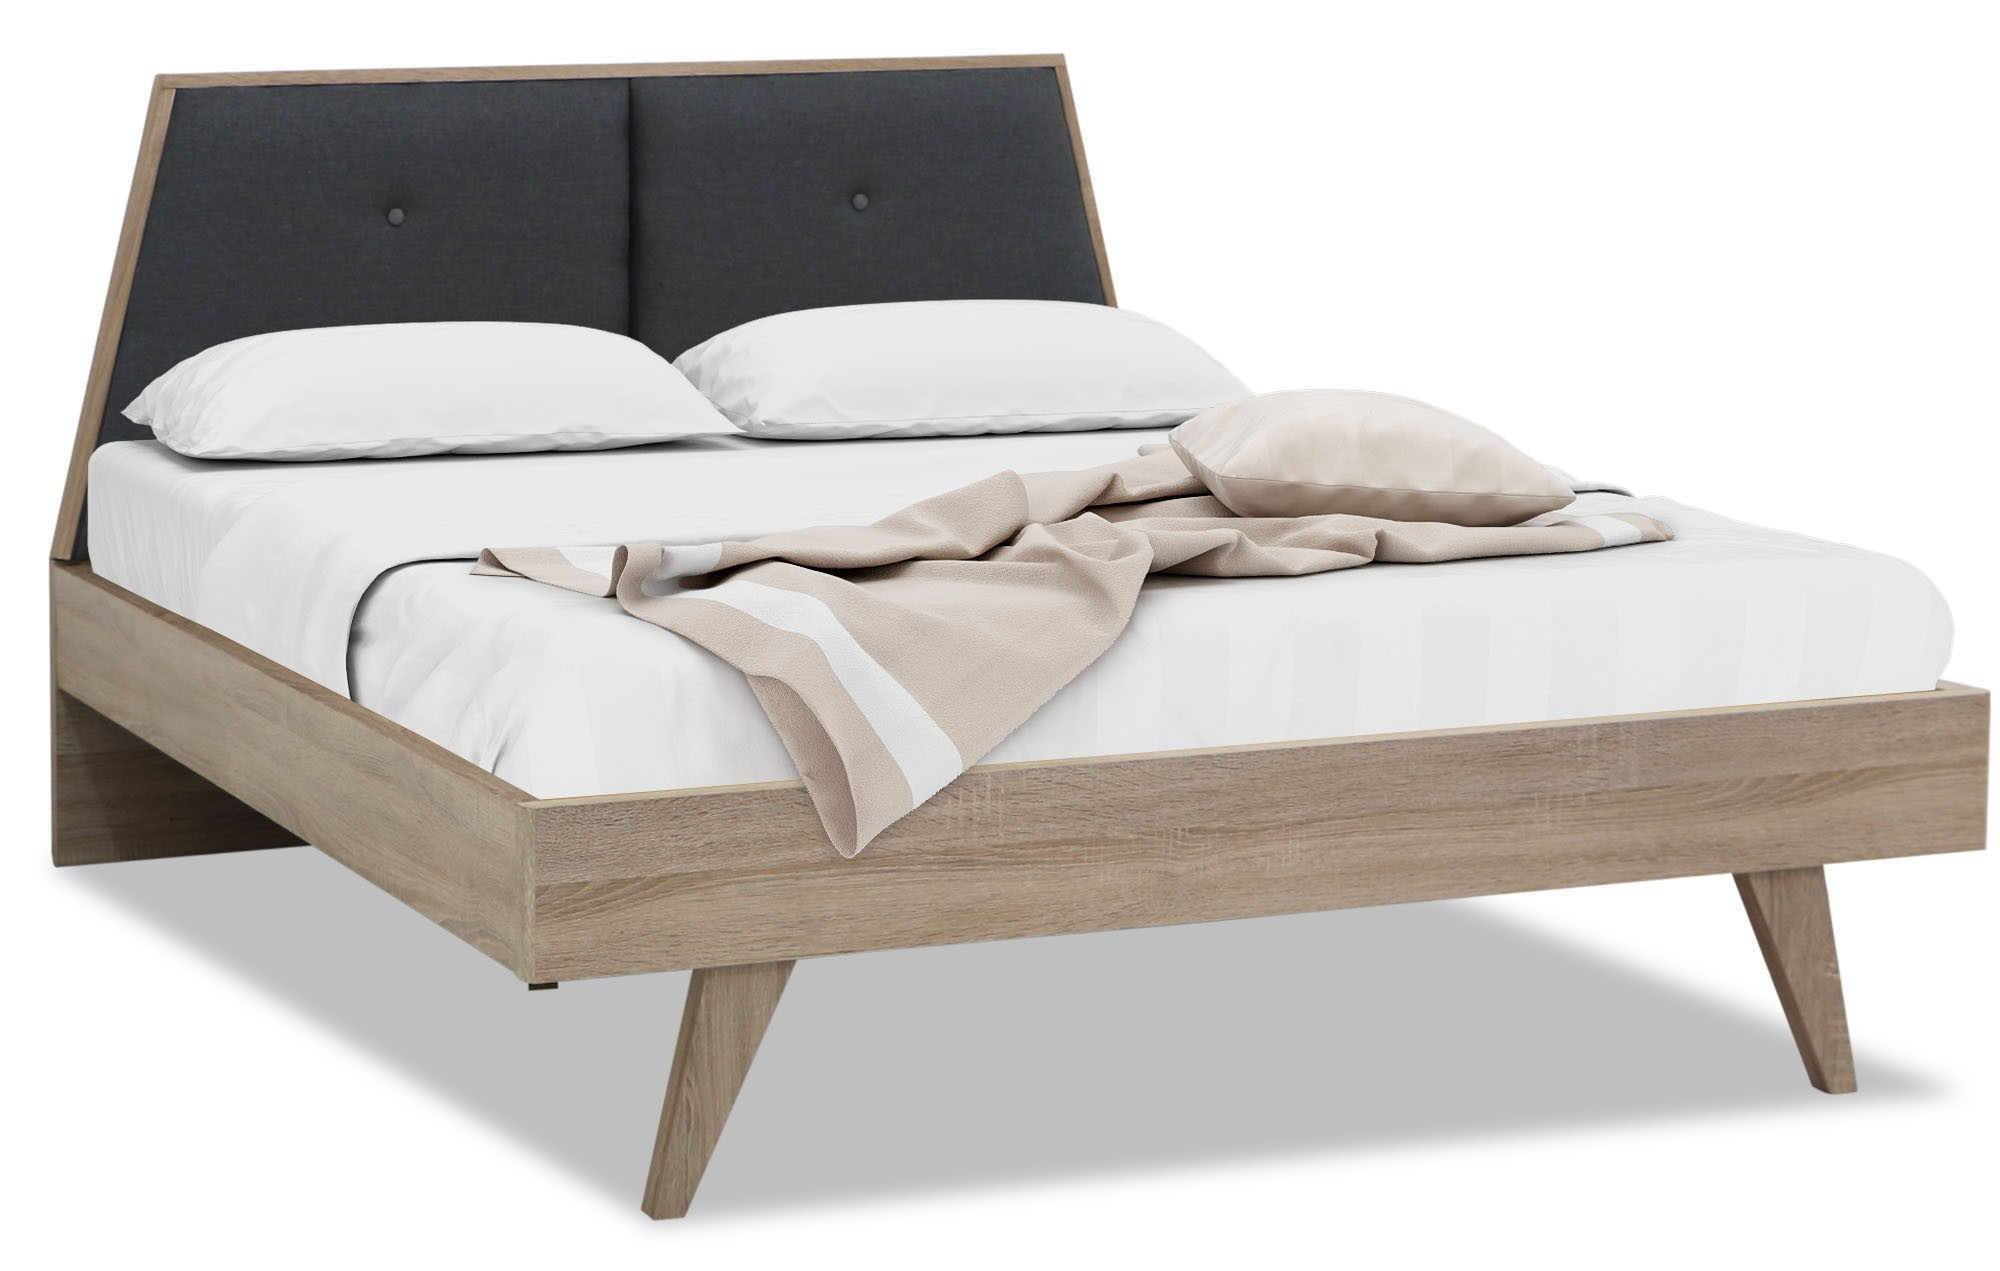 Mikala King Size Bed Furniture Home Decor Fortytwo